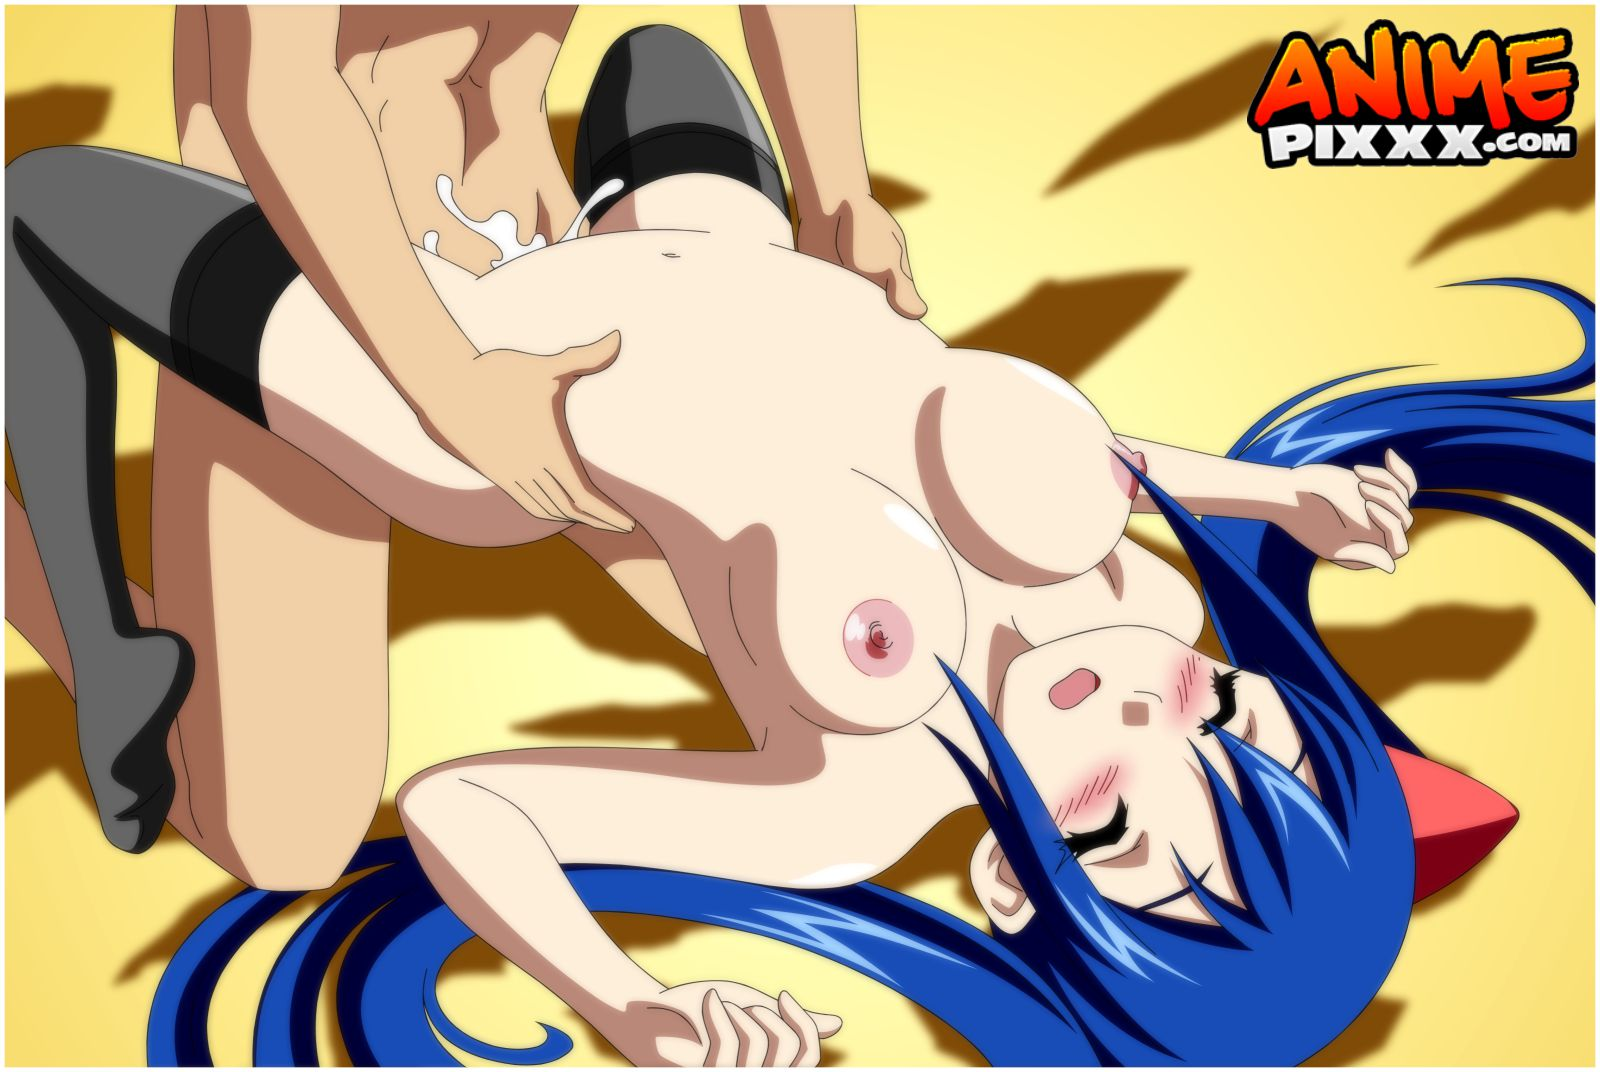 Blue dragon shadow porno hentai pic nsfw streaming